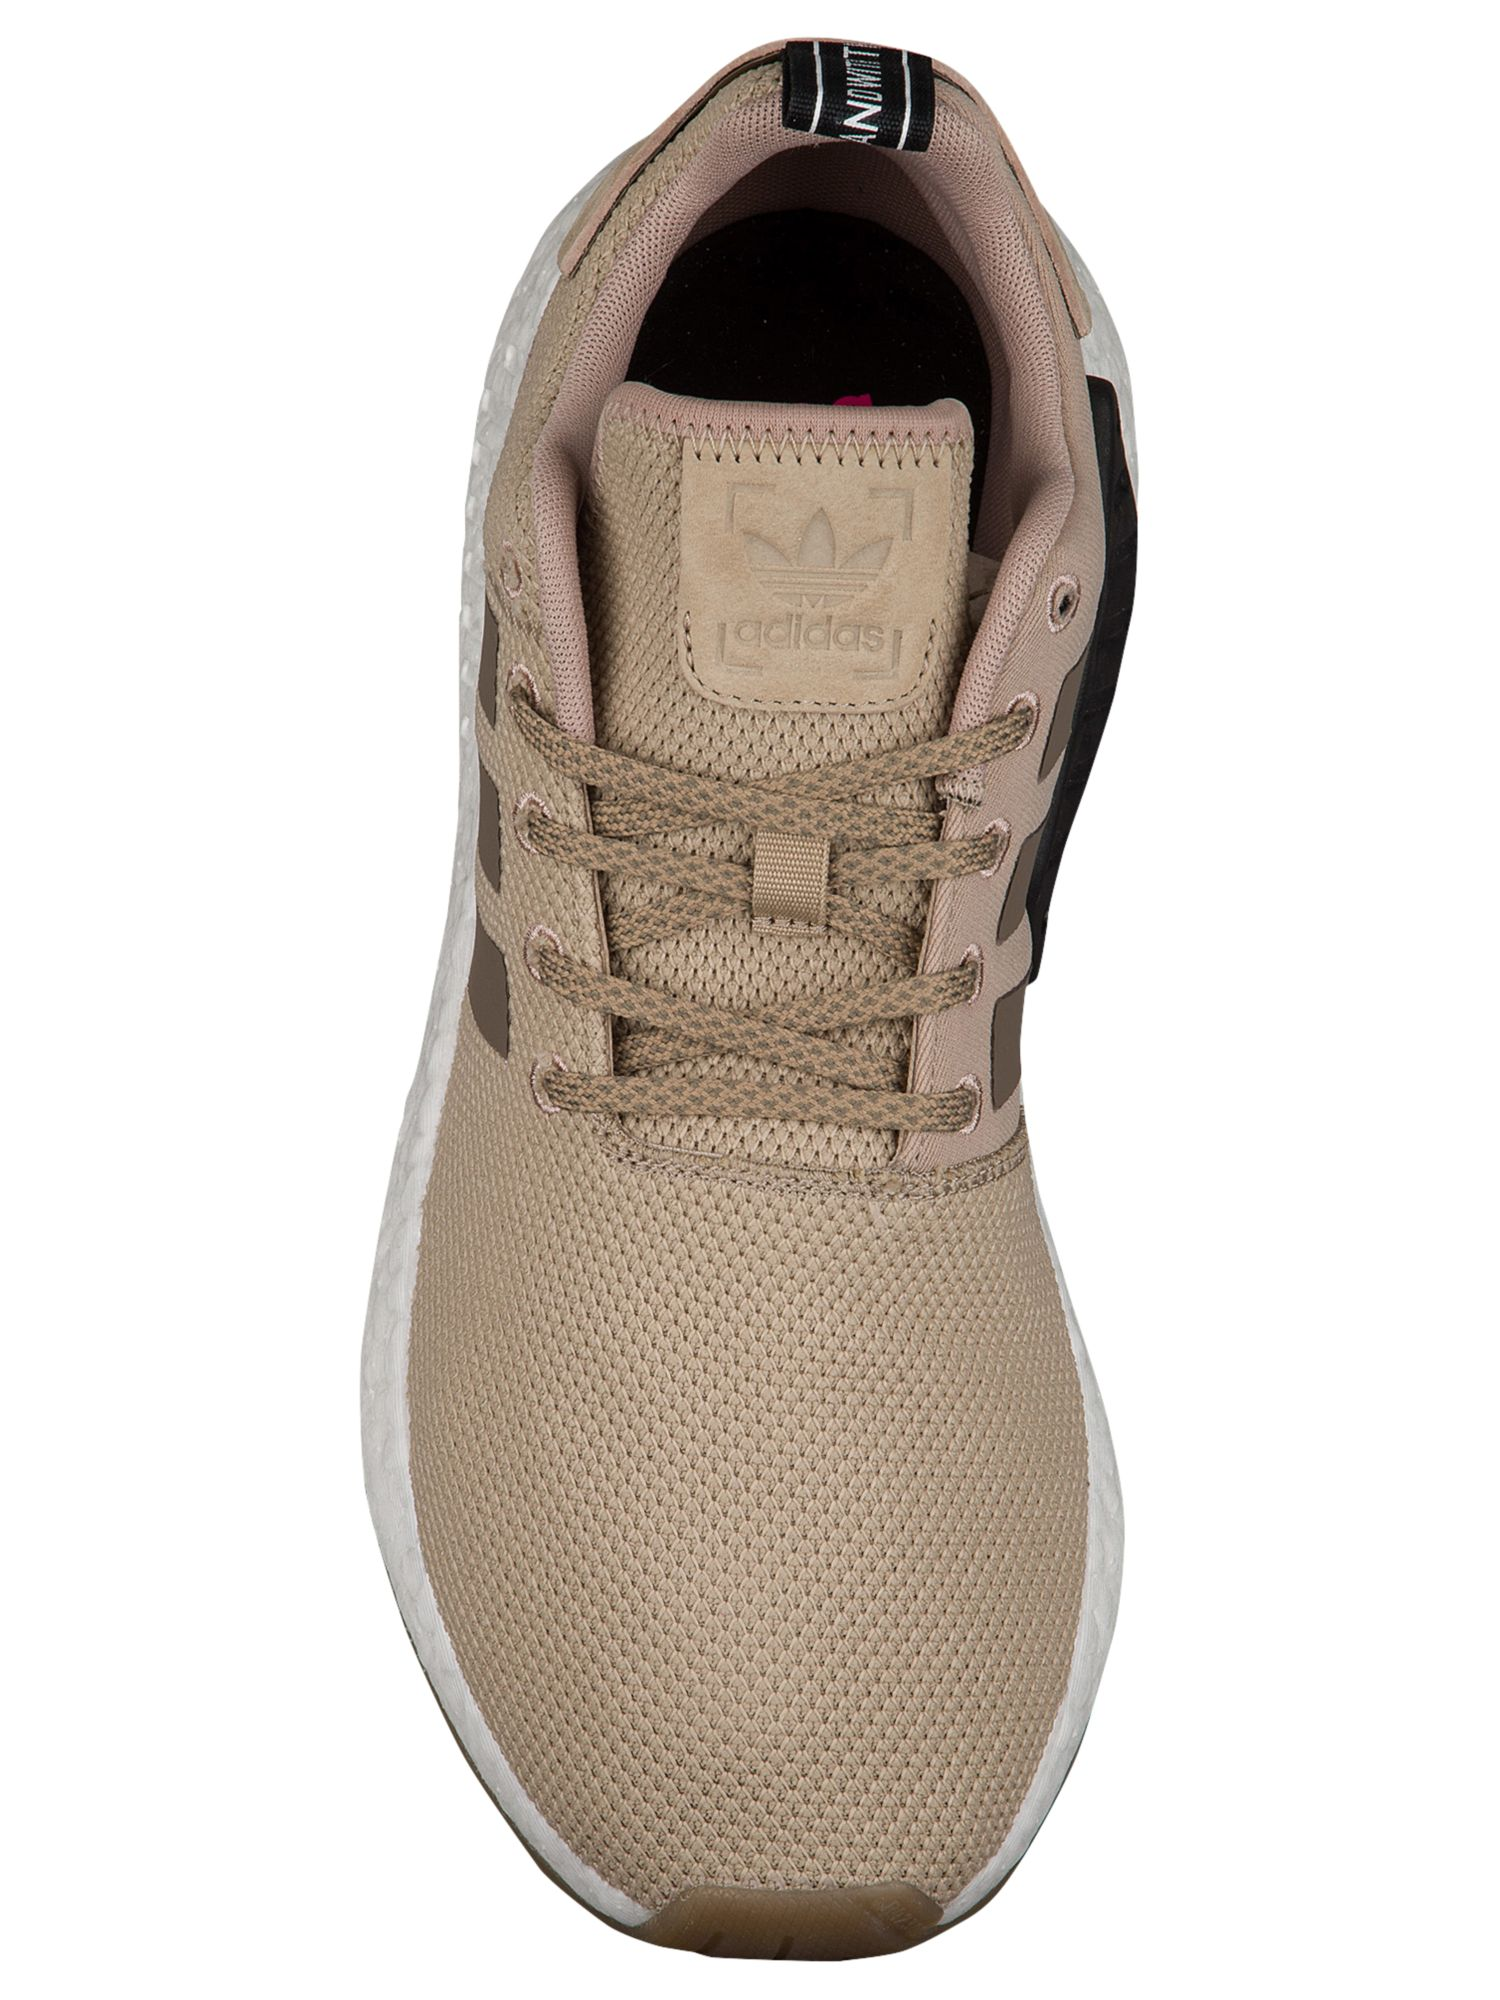 2978f322de2b WIN2 STORE - WIN2 STORE Originals NMD R2 Men s Running Shoes Trace Khaki Simple  Brown Black - Walmart.com